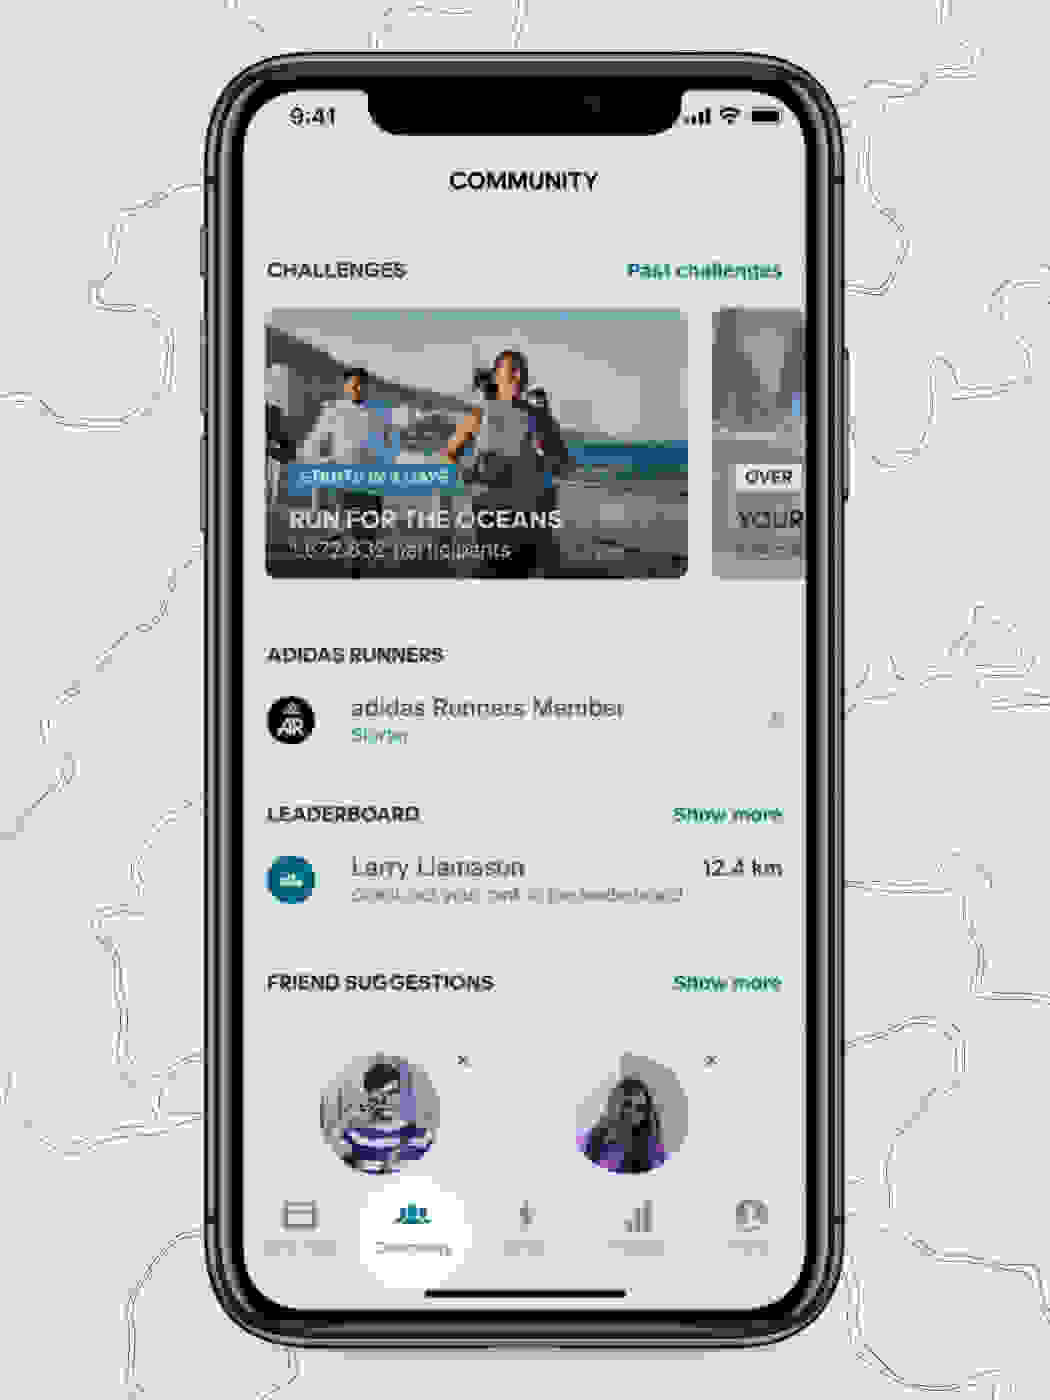 Mobile device showing the adidas Running app community tab on screen